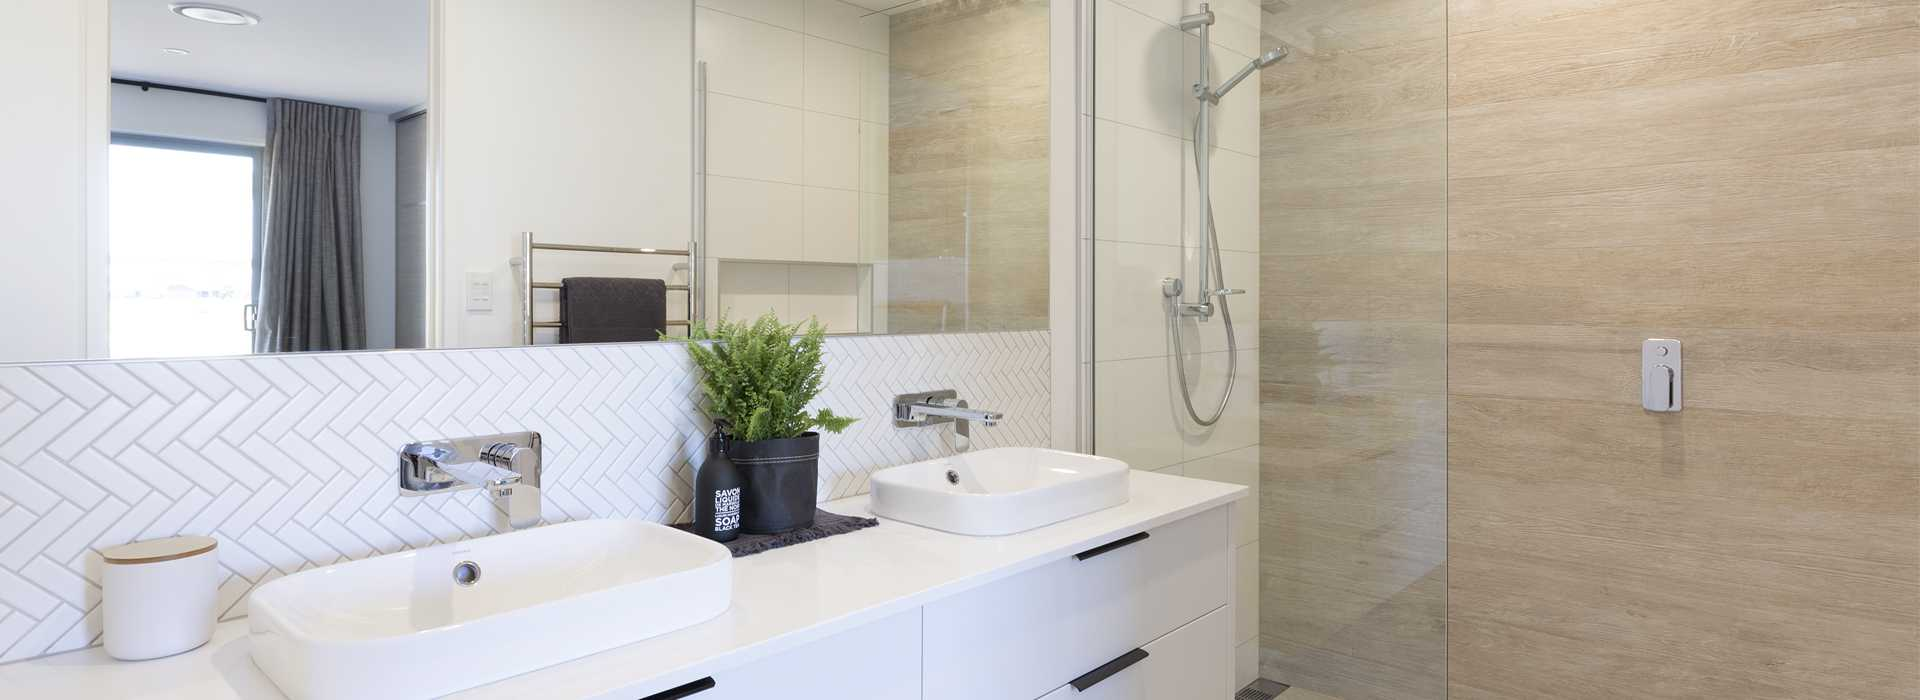 Signature Show Home bathroom